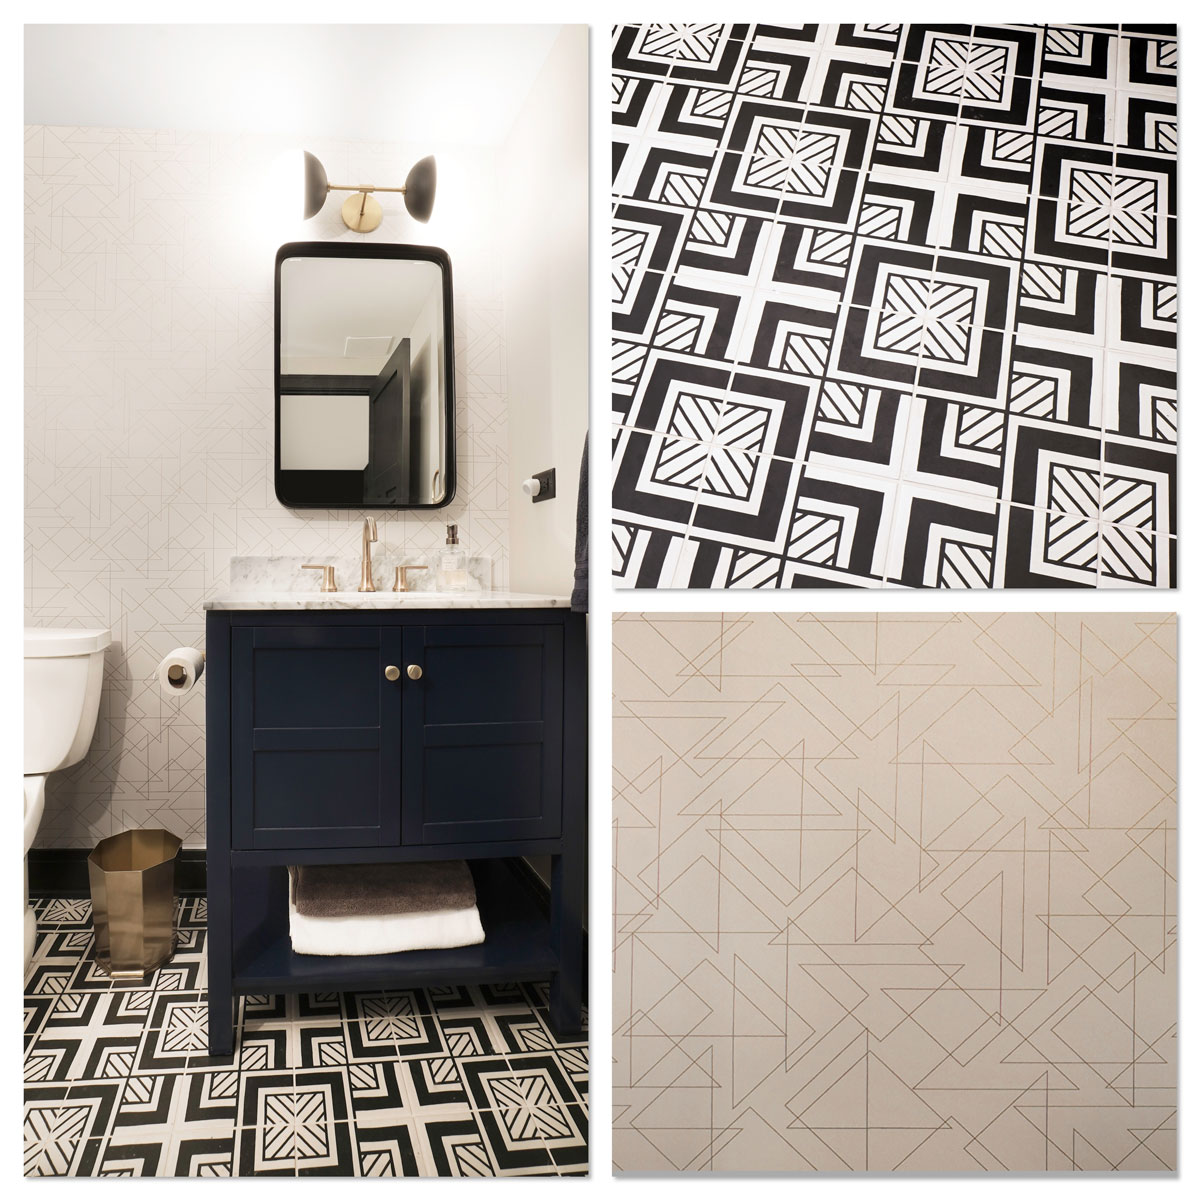 Several photos that showcase tile and wall patterns in a fully remodeled basement bathroom